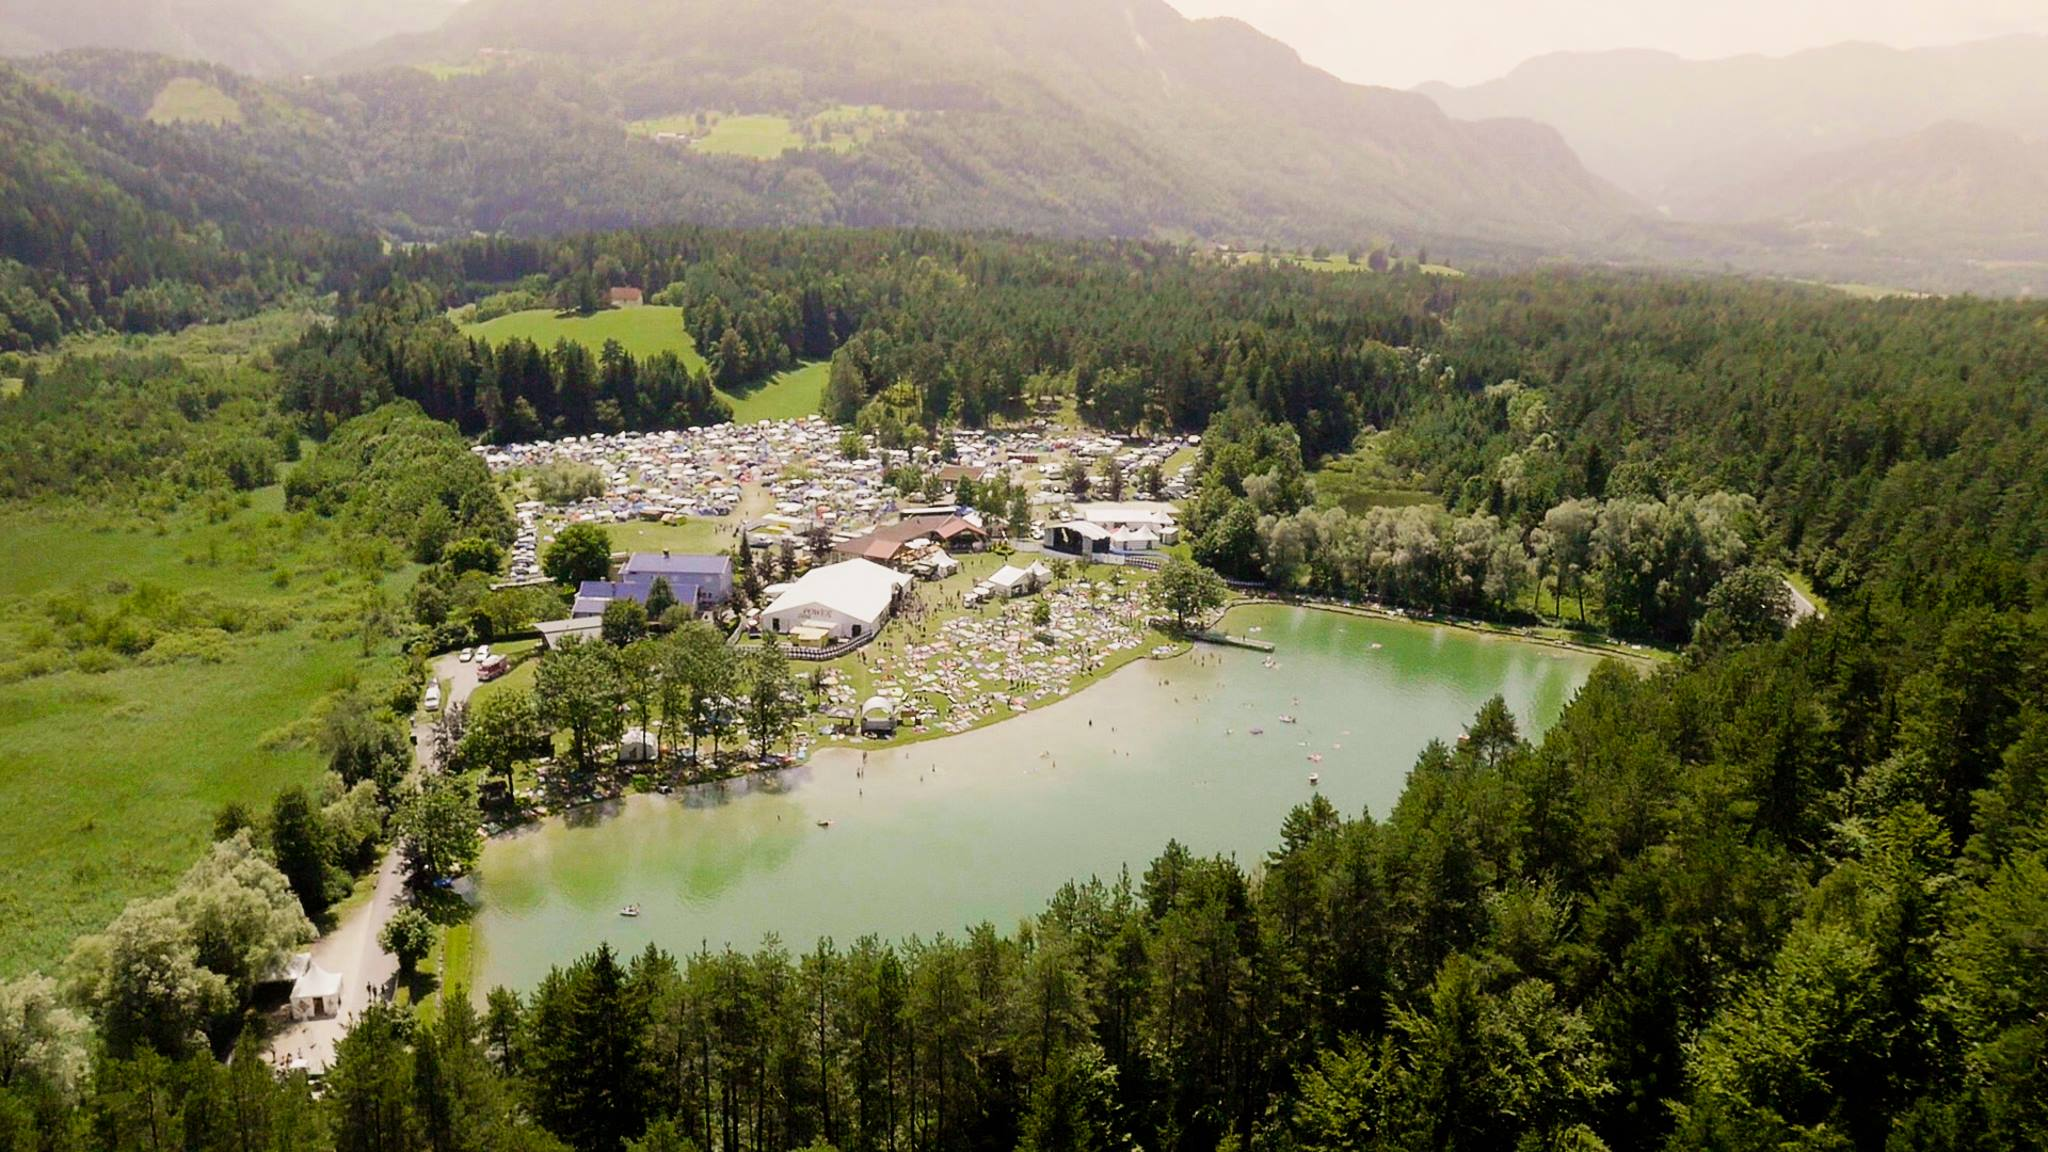 acoustic lakeside, location, luftansicht, sonnegger see, sittersdorf, festival, oesterreich